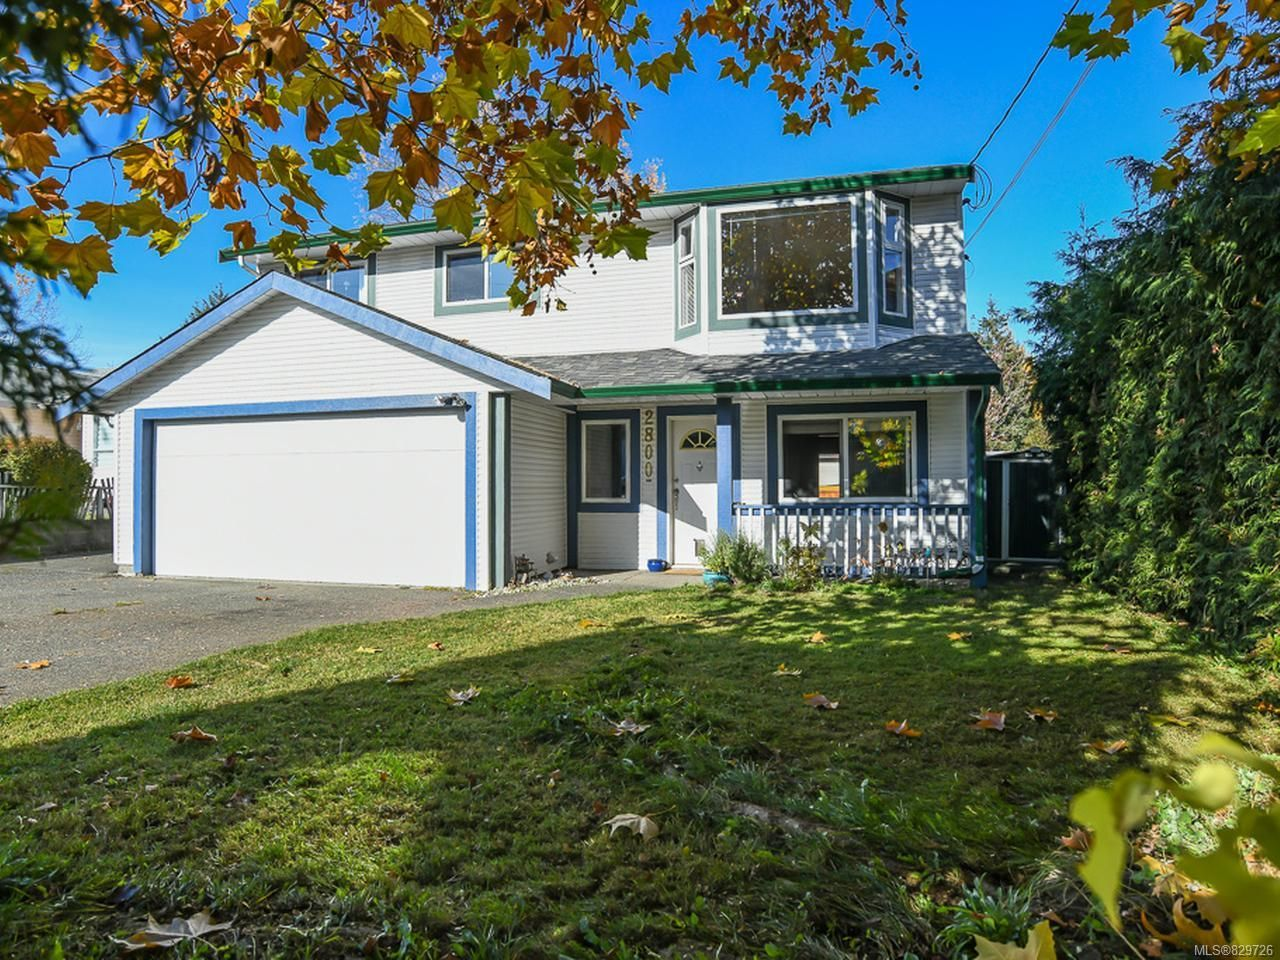 Main Photo: 2800 Windermere Ave in CUMBERLAND: CV Cumberland House for sale (Comox Valley)  : MLS®# 829726